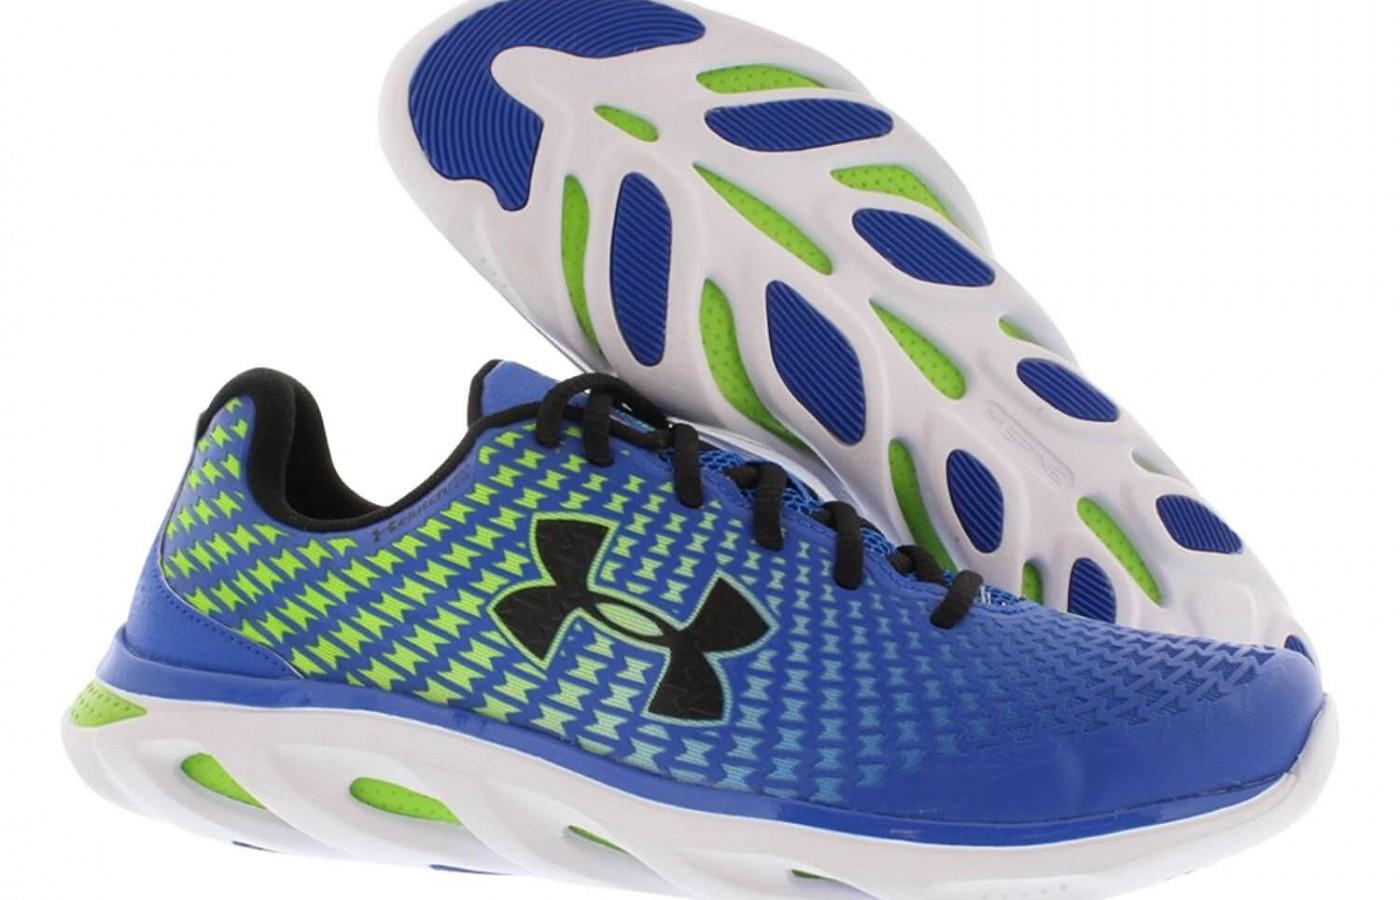 The outsole of the Under armour Spine Clutch